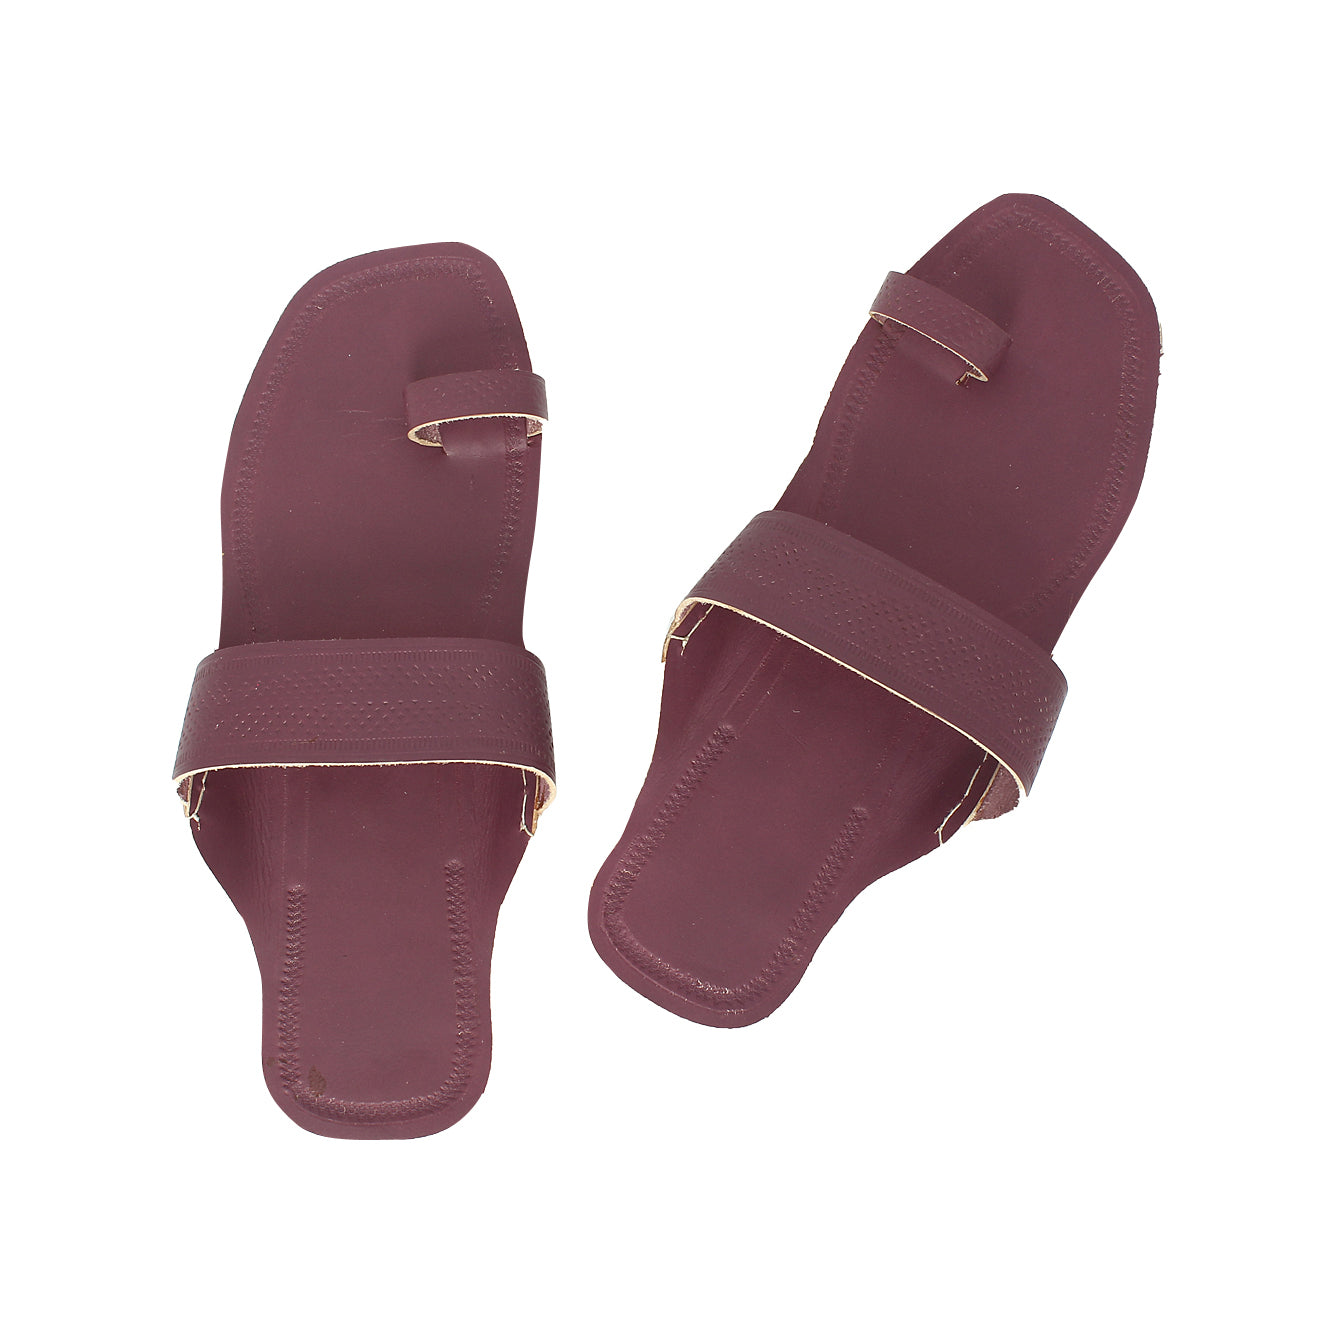 Modest Purple  Kolhapuri Leather Chappal for Women KRKA-P-W-204